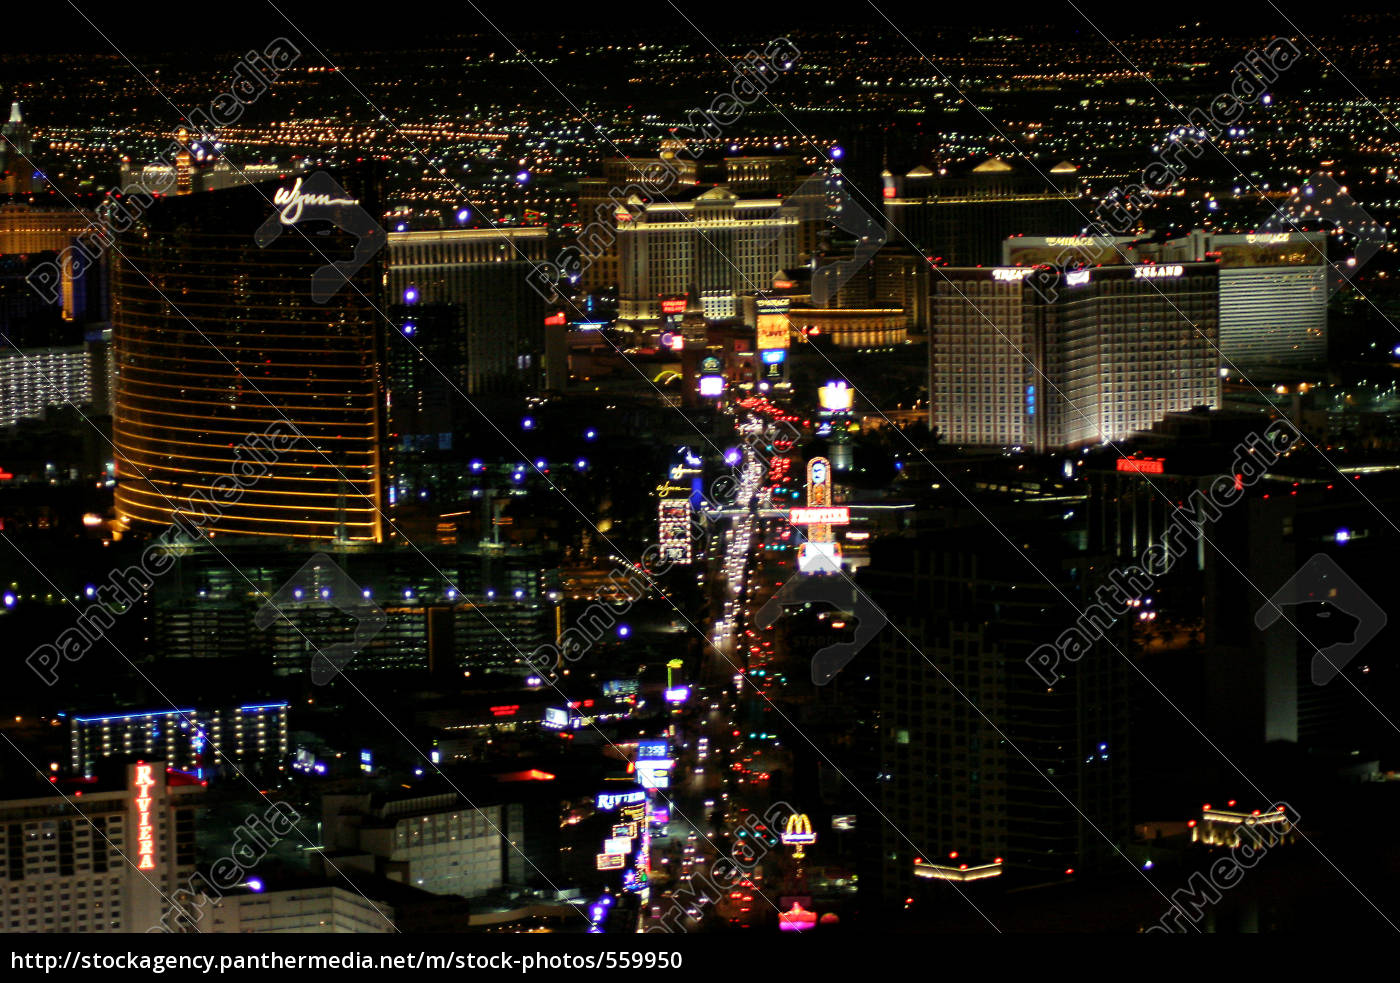 las, vegas, by, night, 1 - 559950